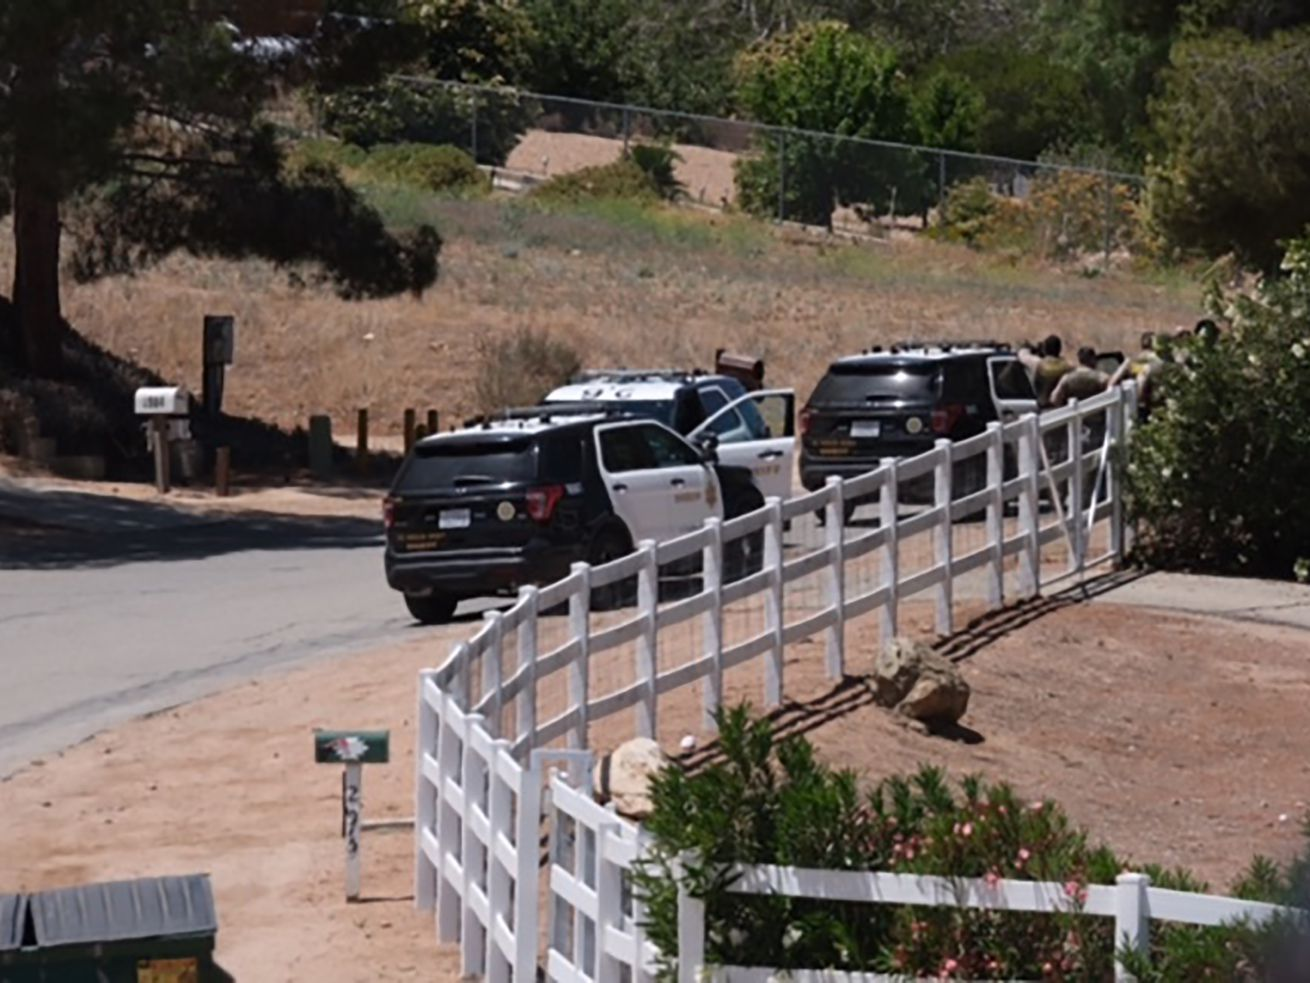 Police vehicles appear on the scene of a fire near a home in Acton, Calif. on Tuesday, June 1, 2021. Authorities say there's been a shooting at a Los Angeles County Fire Department station.